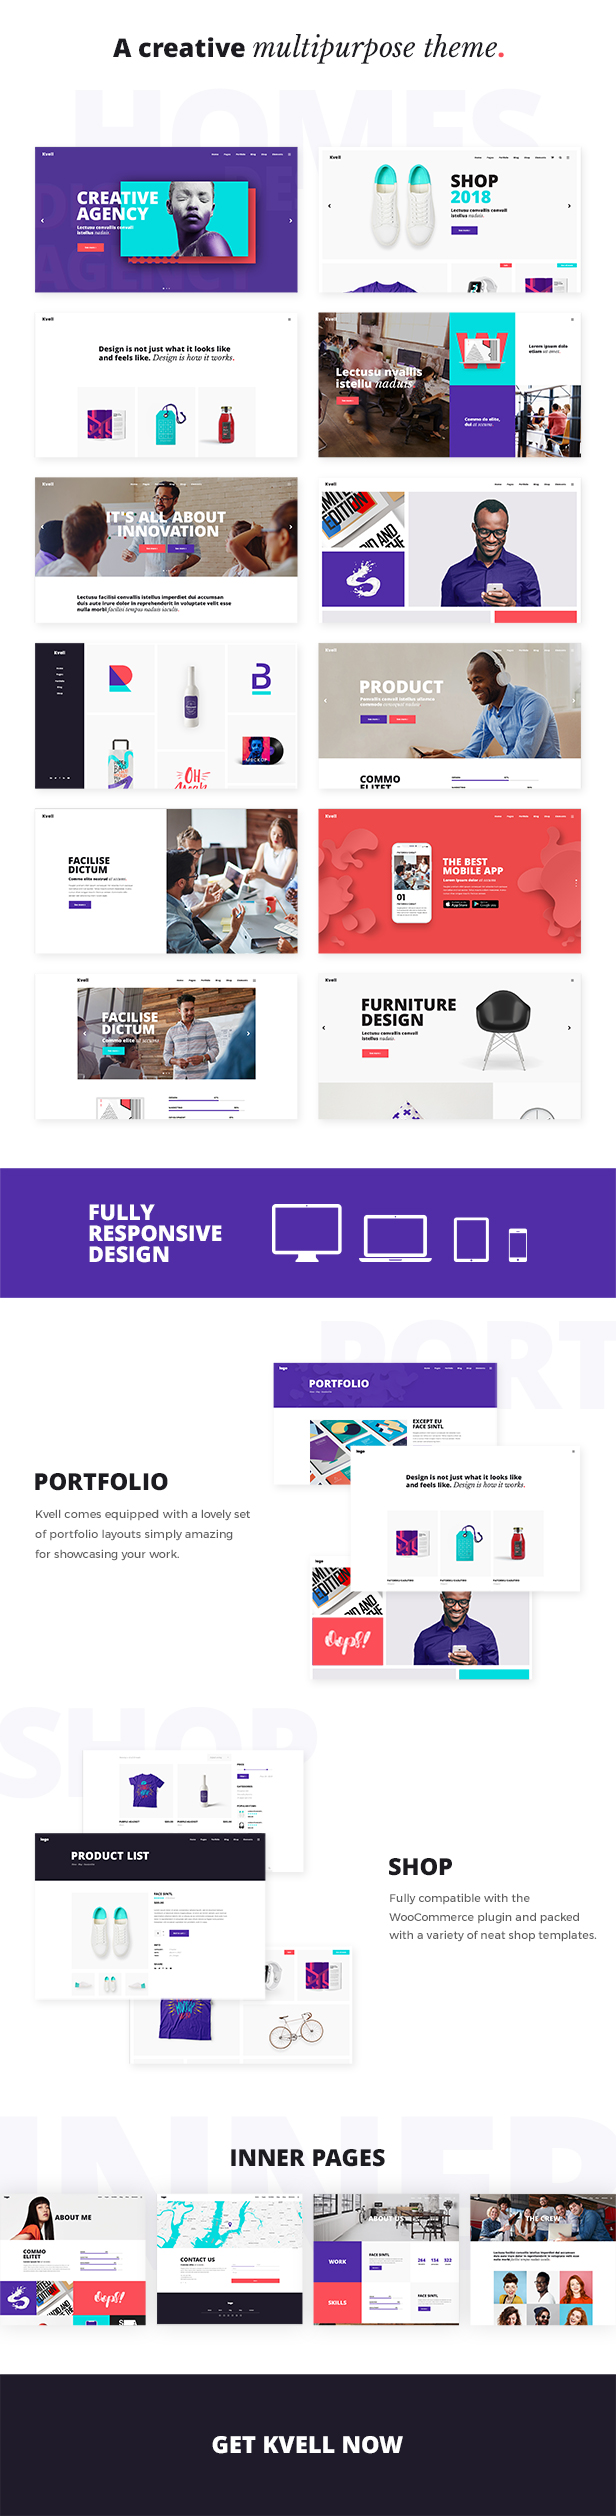 WordPress theme Kvell - A Creative Multipurpose Theme for Freelancers and Agencies (Creative)